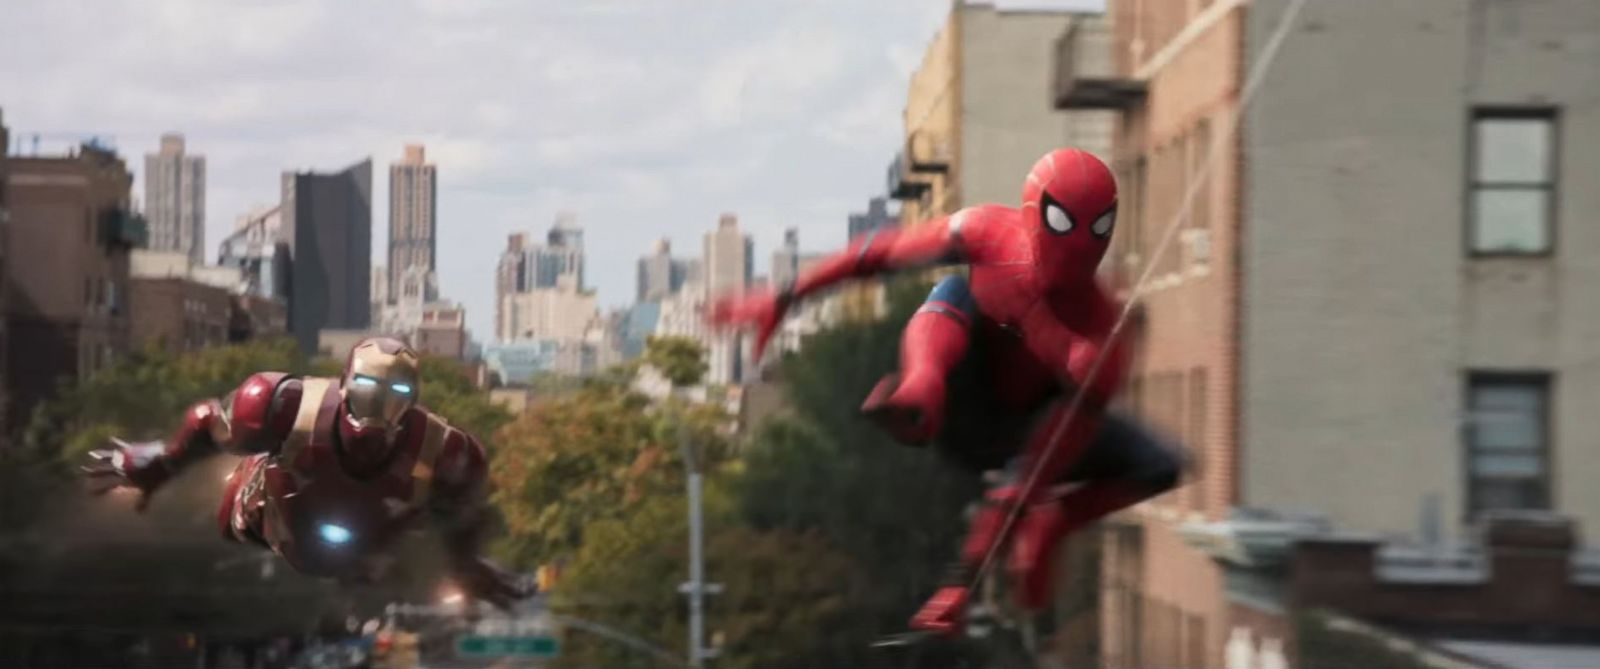 Here's what we'd like to see from Iron Man in 'Spider-Man: Homecoming'